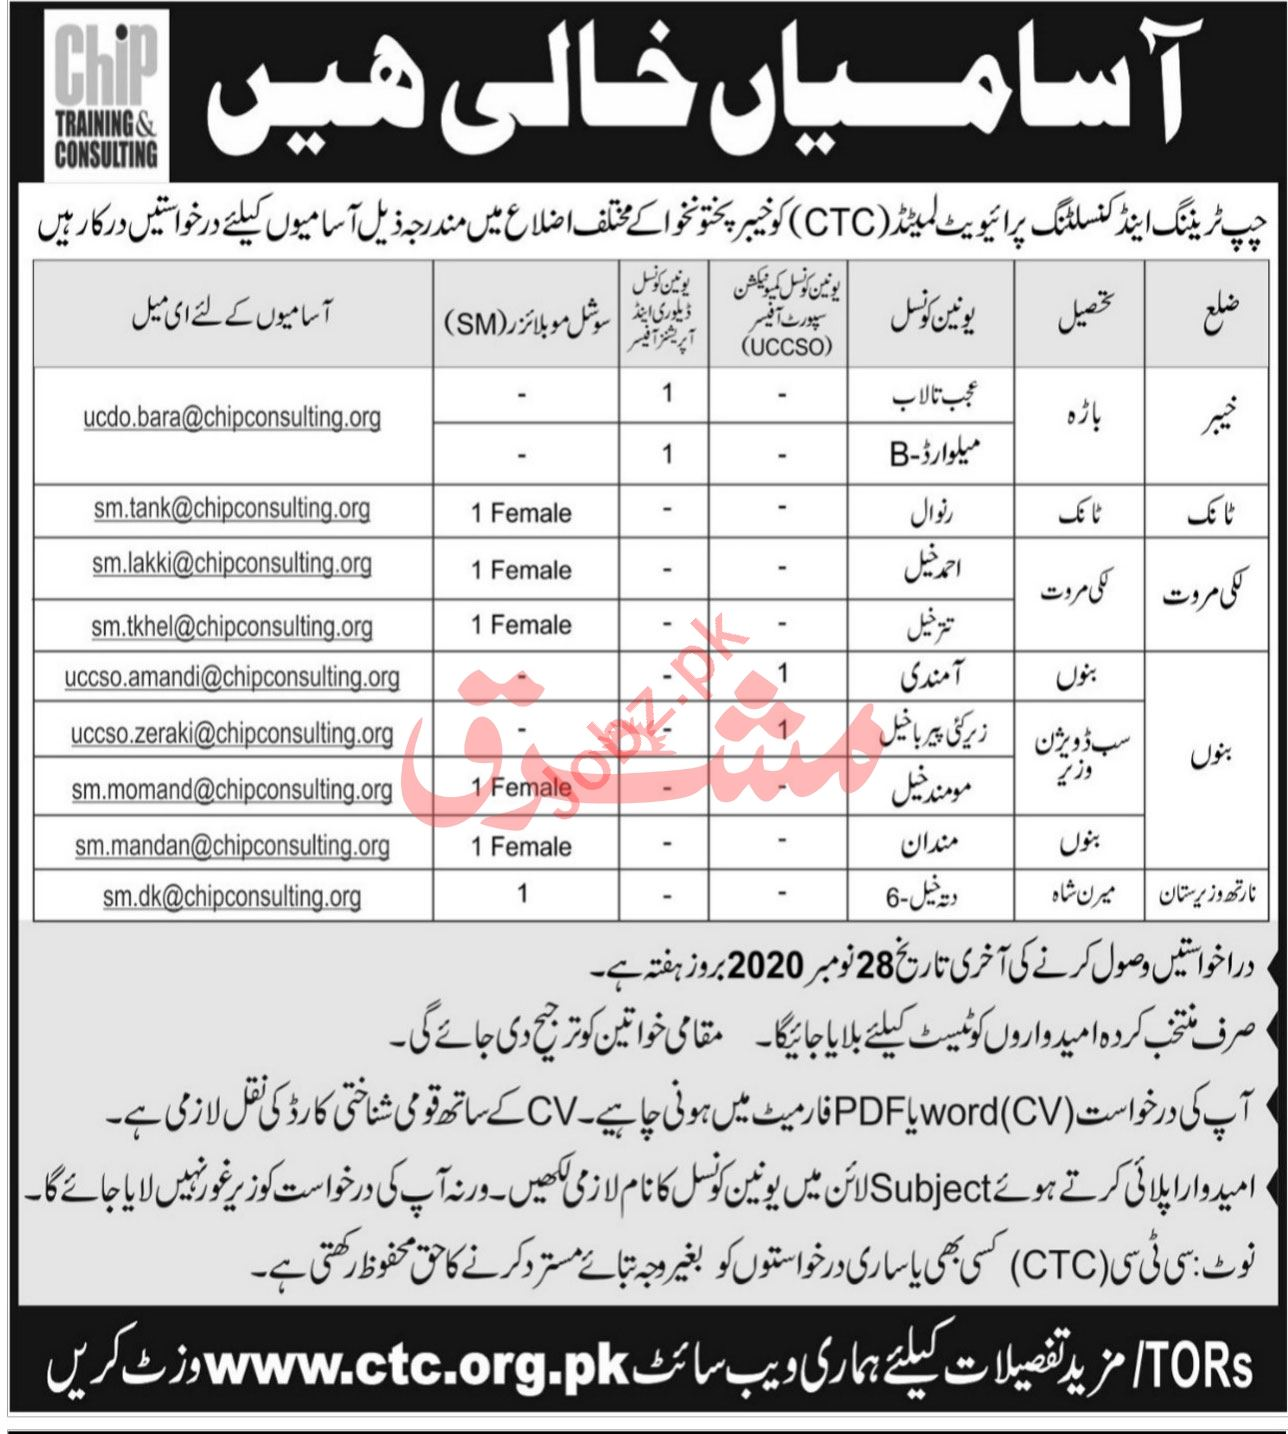 CHIP Training & Consulting CTC KPK Jobs 2020 UCCSO Officer